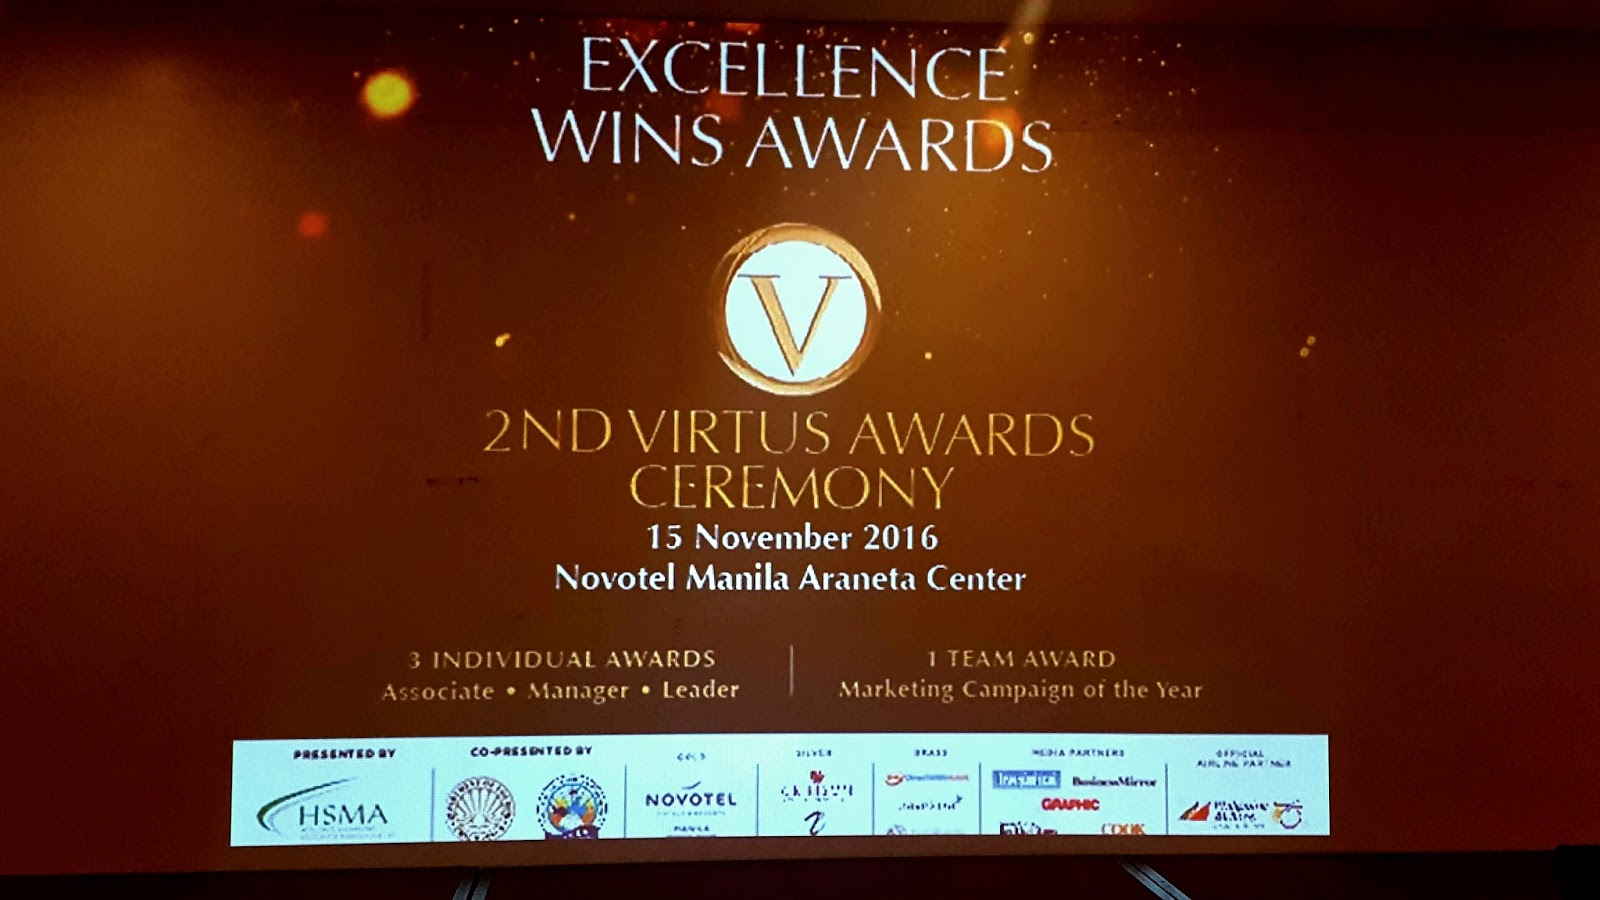 Virtus Awards Now On Its 2nd Year